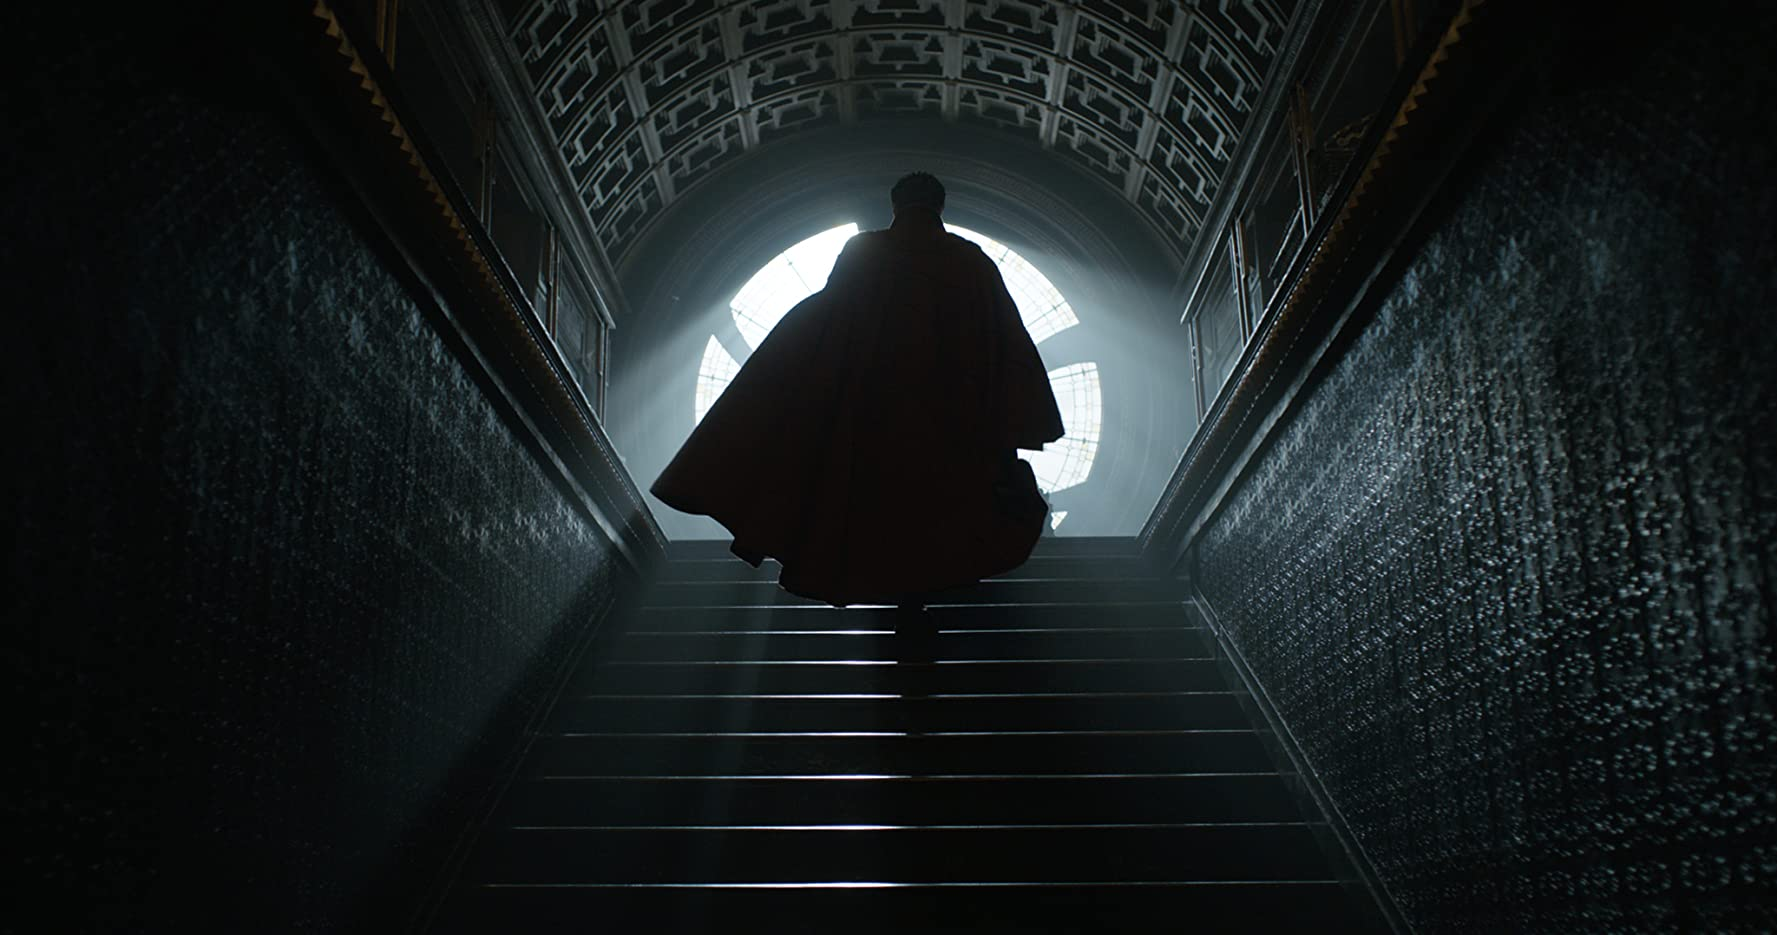 Benedict Cumberbatch in Doctor Strange (2016)